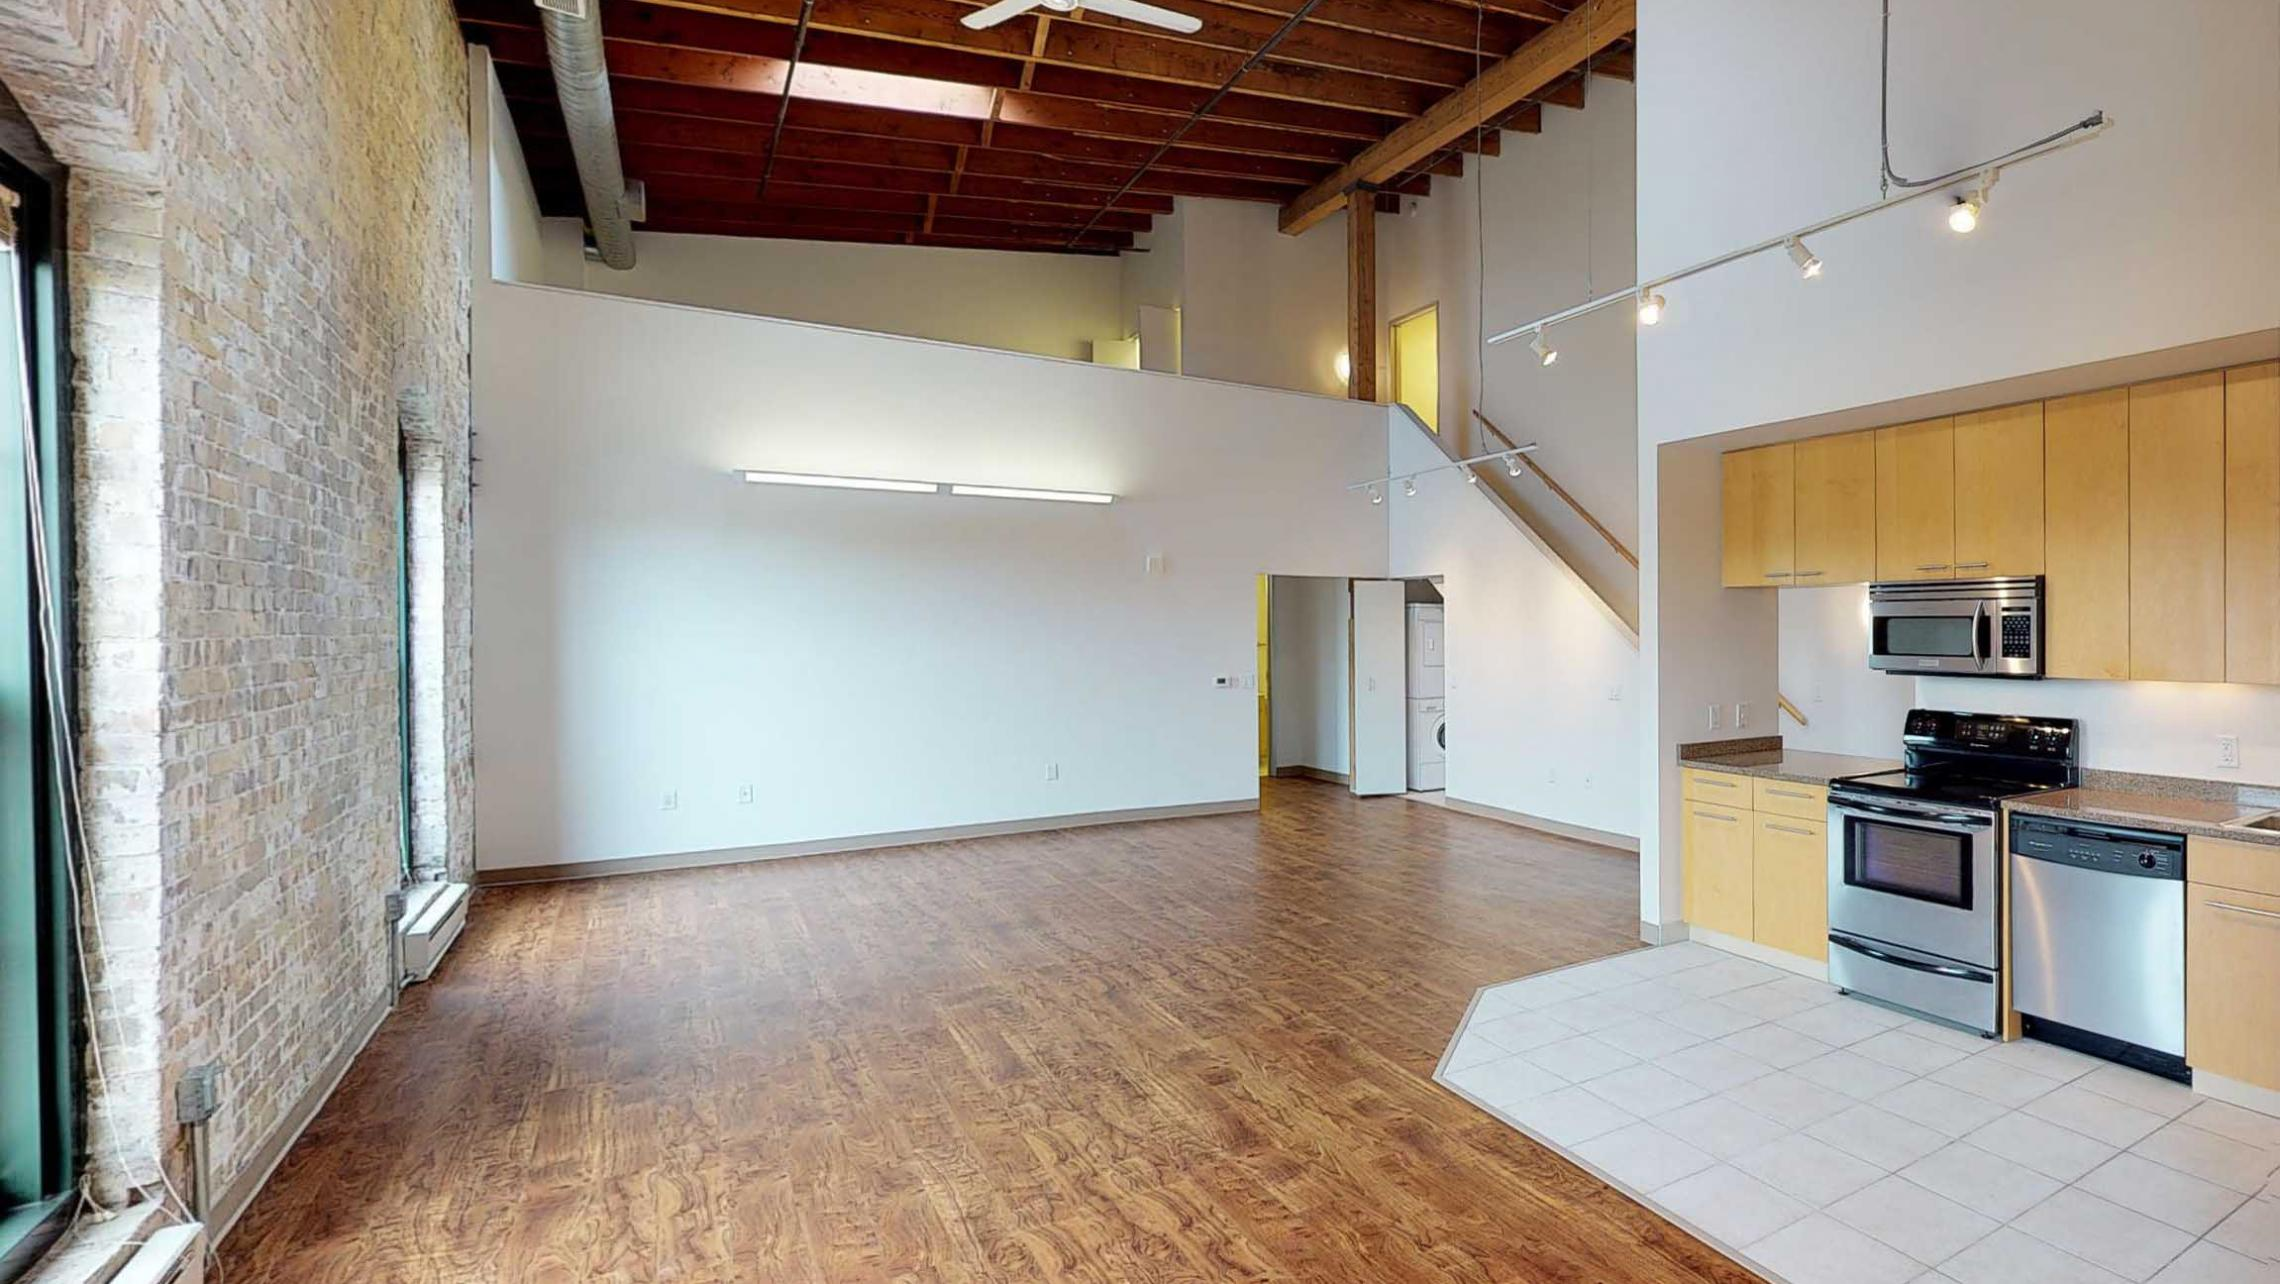 Tobacco-Lofts-Apartment-E306-Two-Bedroom-Lofted-Exposures-Historic-Top-Floor-Yards-Downtown-Madison.jpg